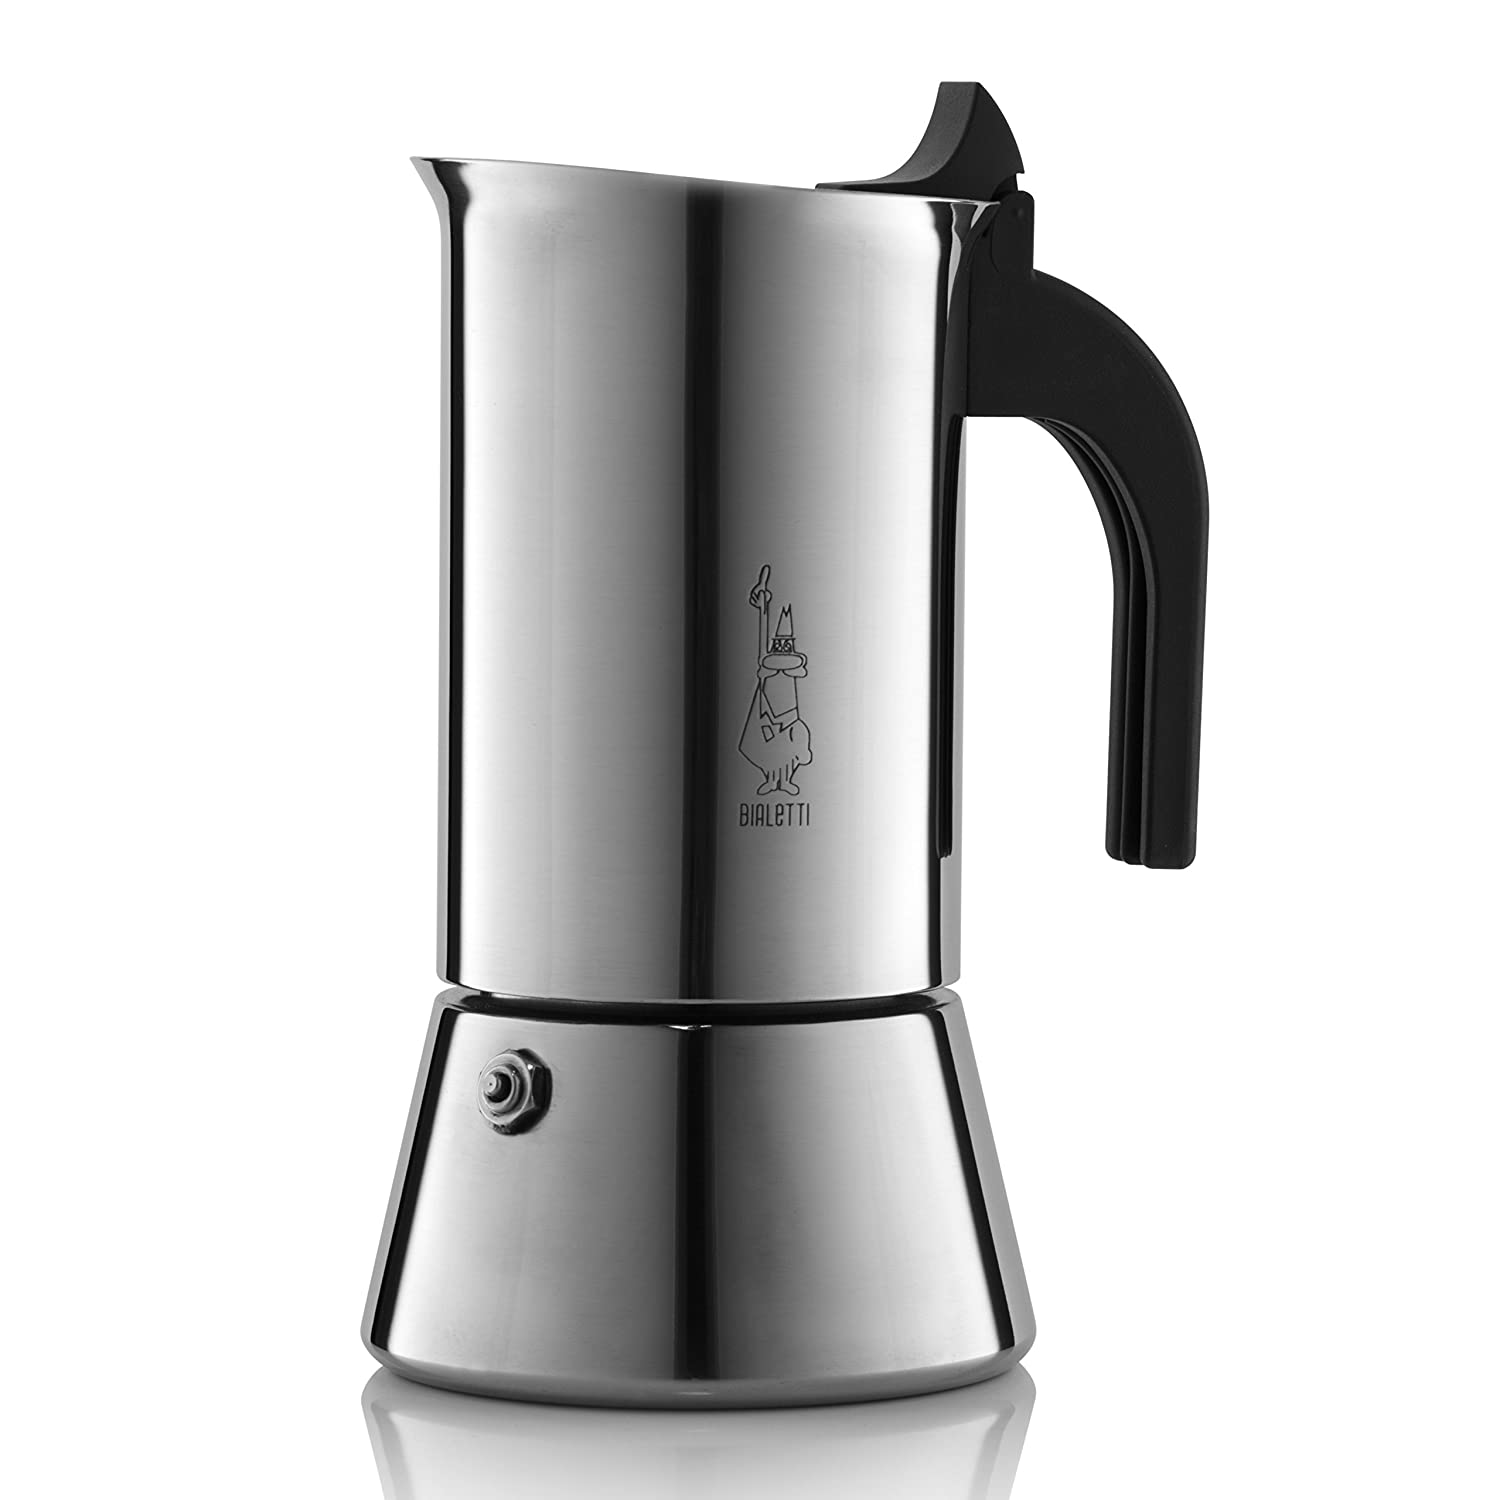 Bialetti 06969 venus Stovetop espresso coffee maker 6-Cup Stainless Steel